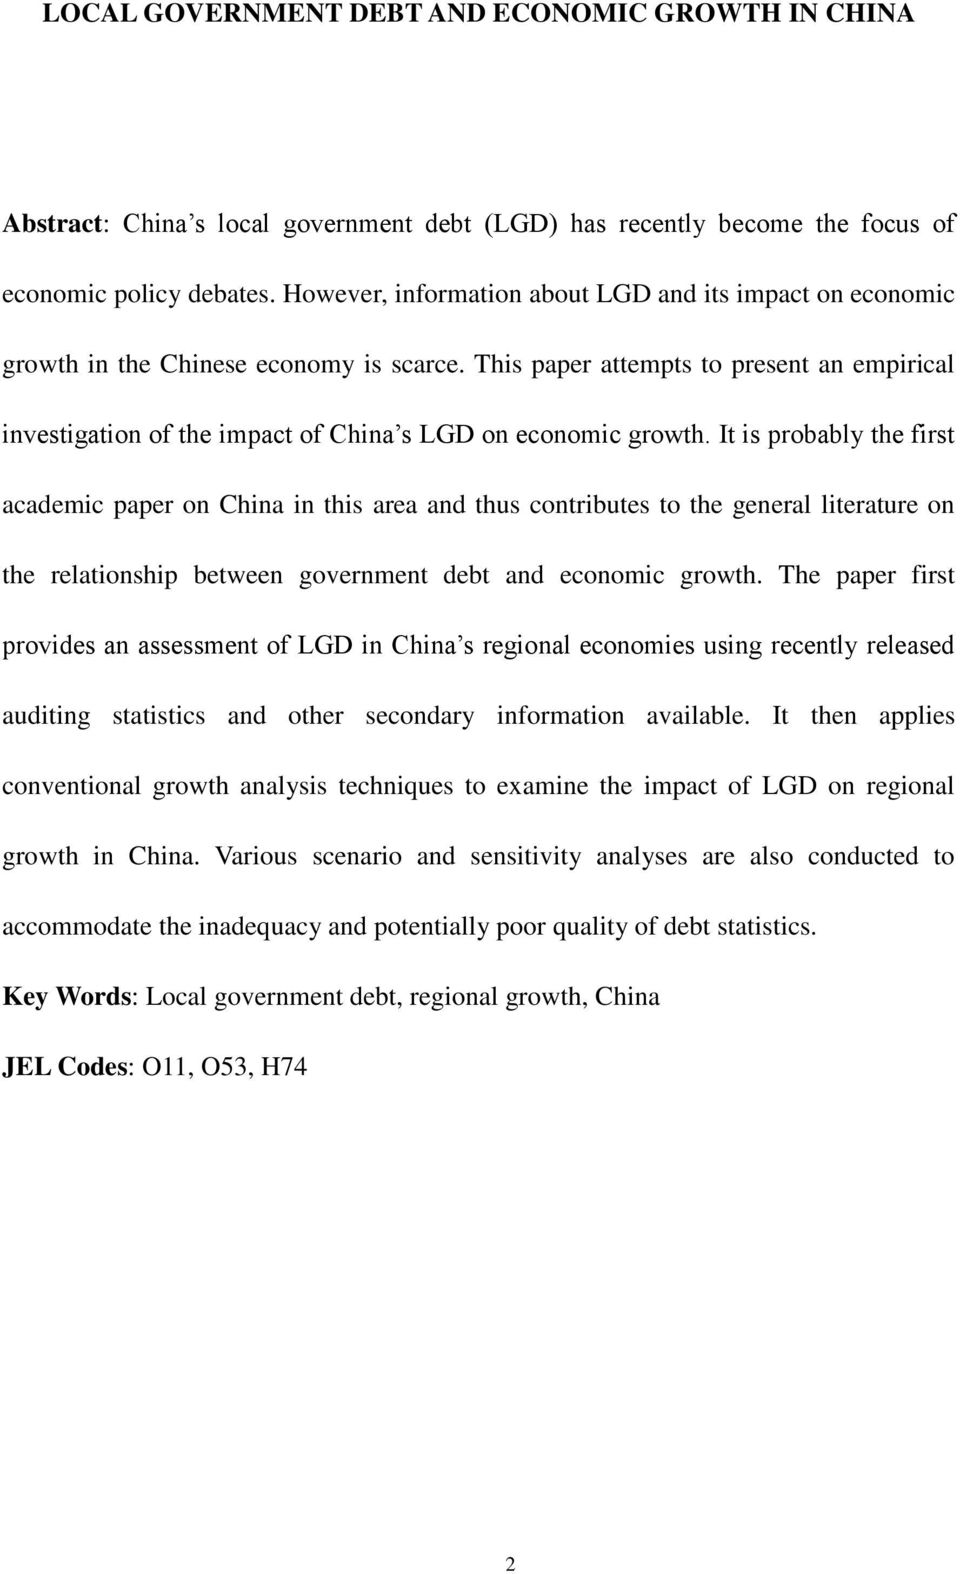 This paper attempts to present an empirical investigation of the impact of China s LGD on economic growth.